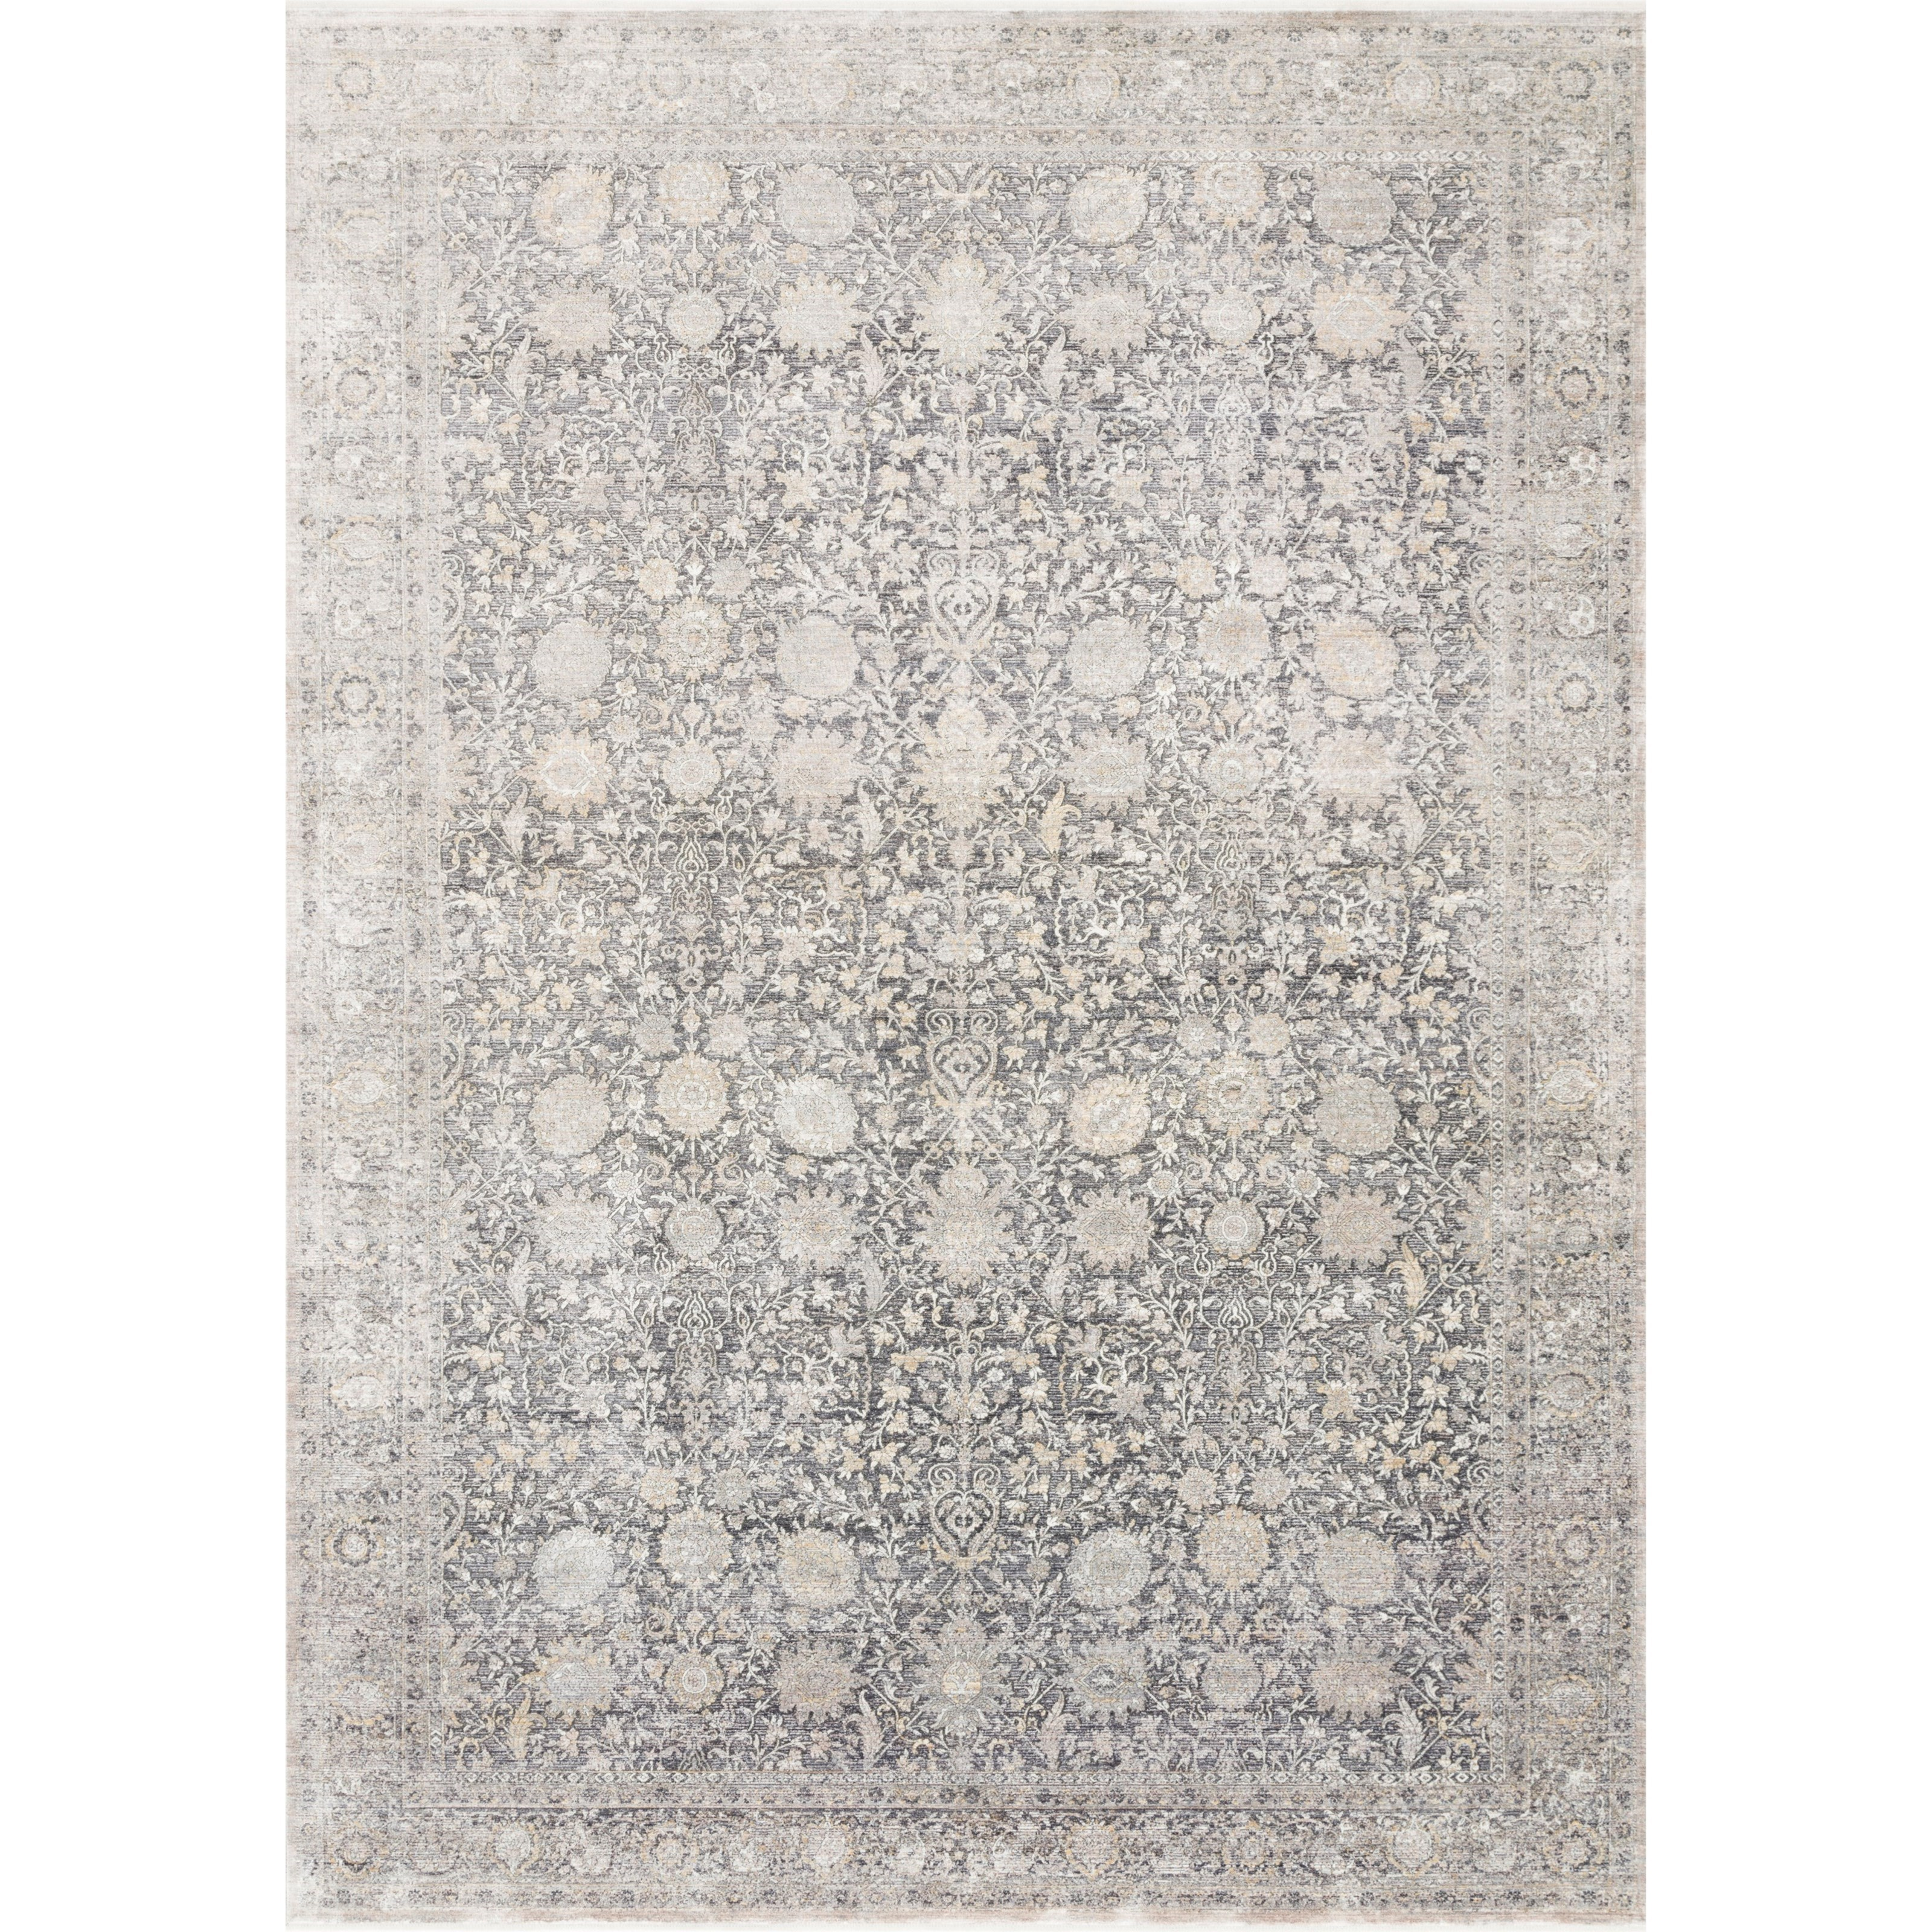 """Gemma 9'6"""" x 12'6"""" Charcoal / Sand Rug by Loloi Rugs at Virginia Furniture Market"""